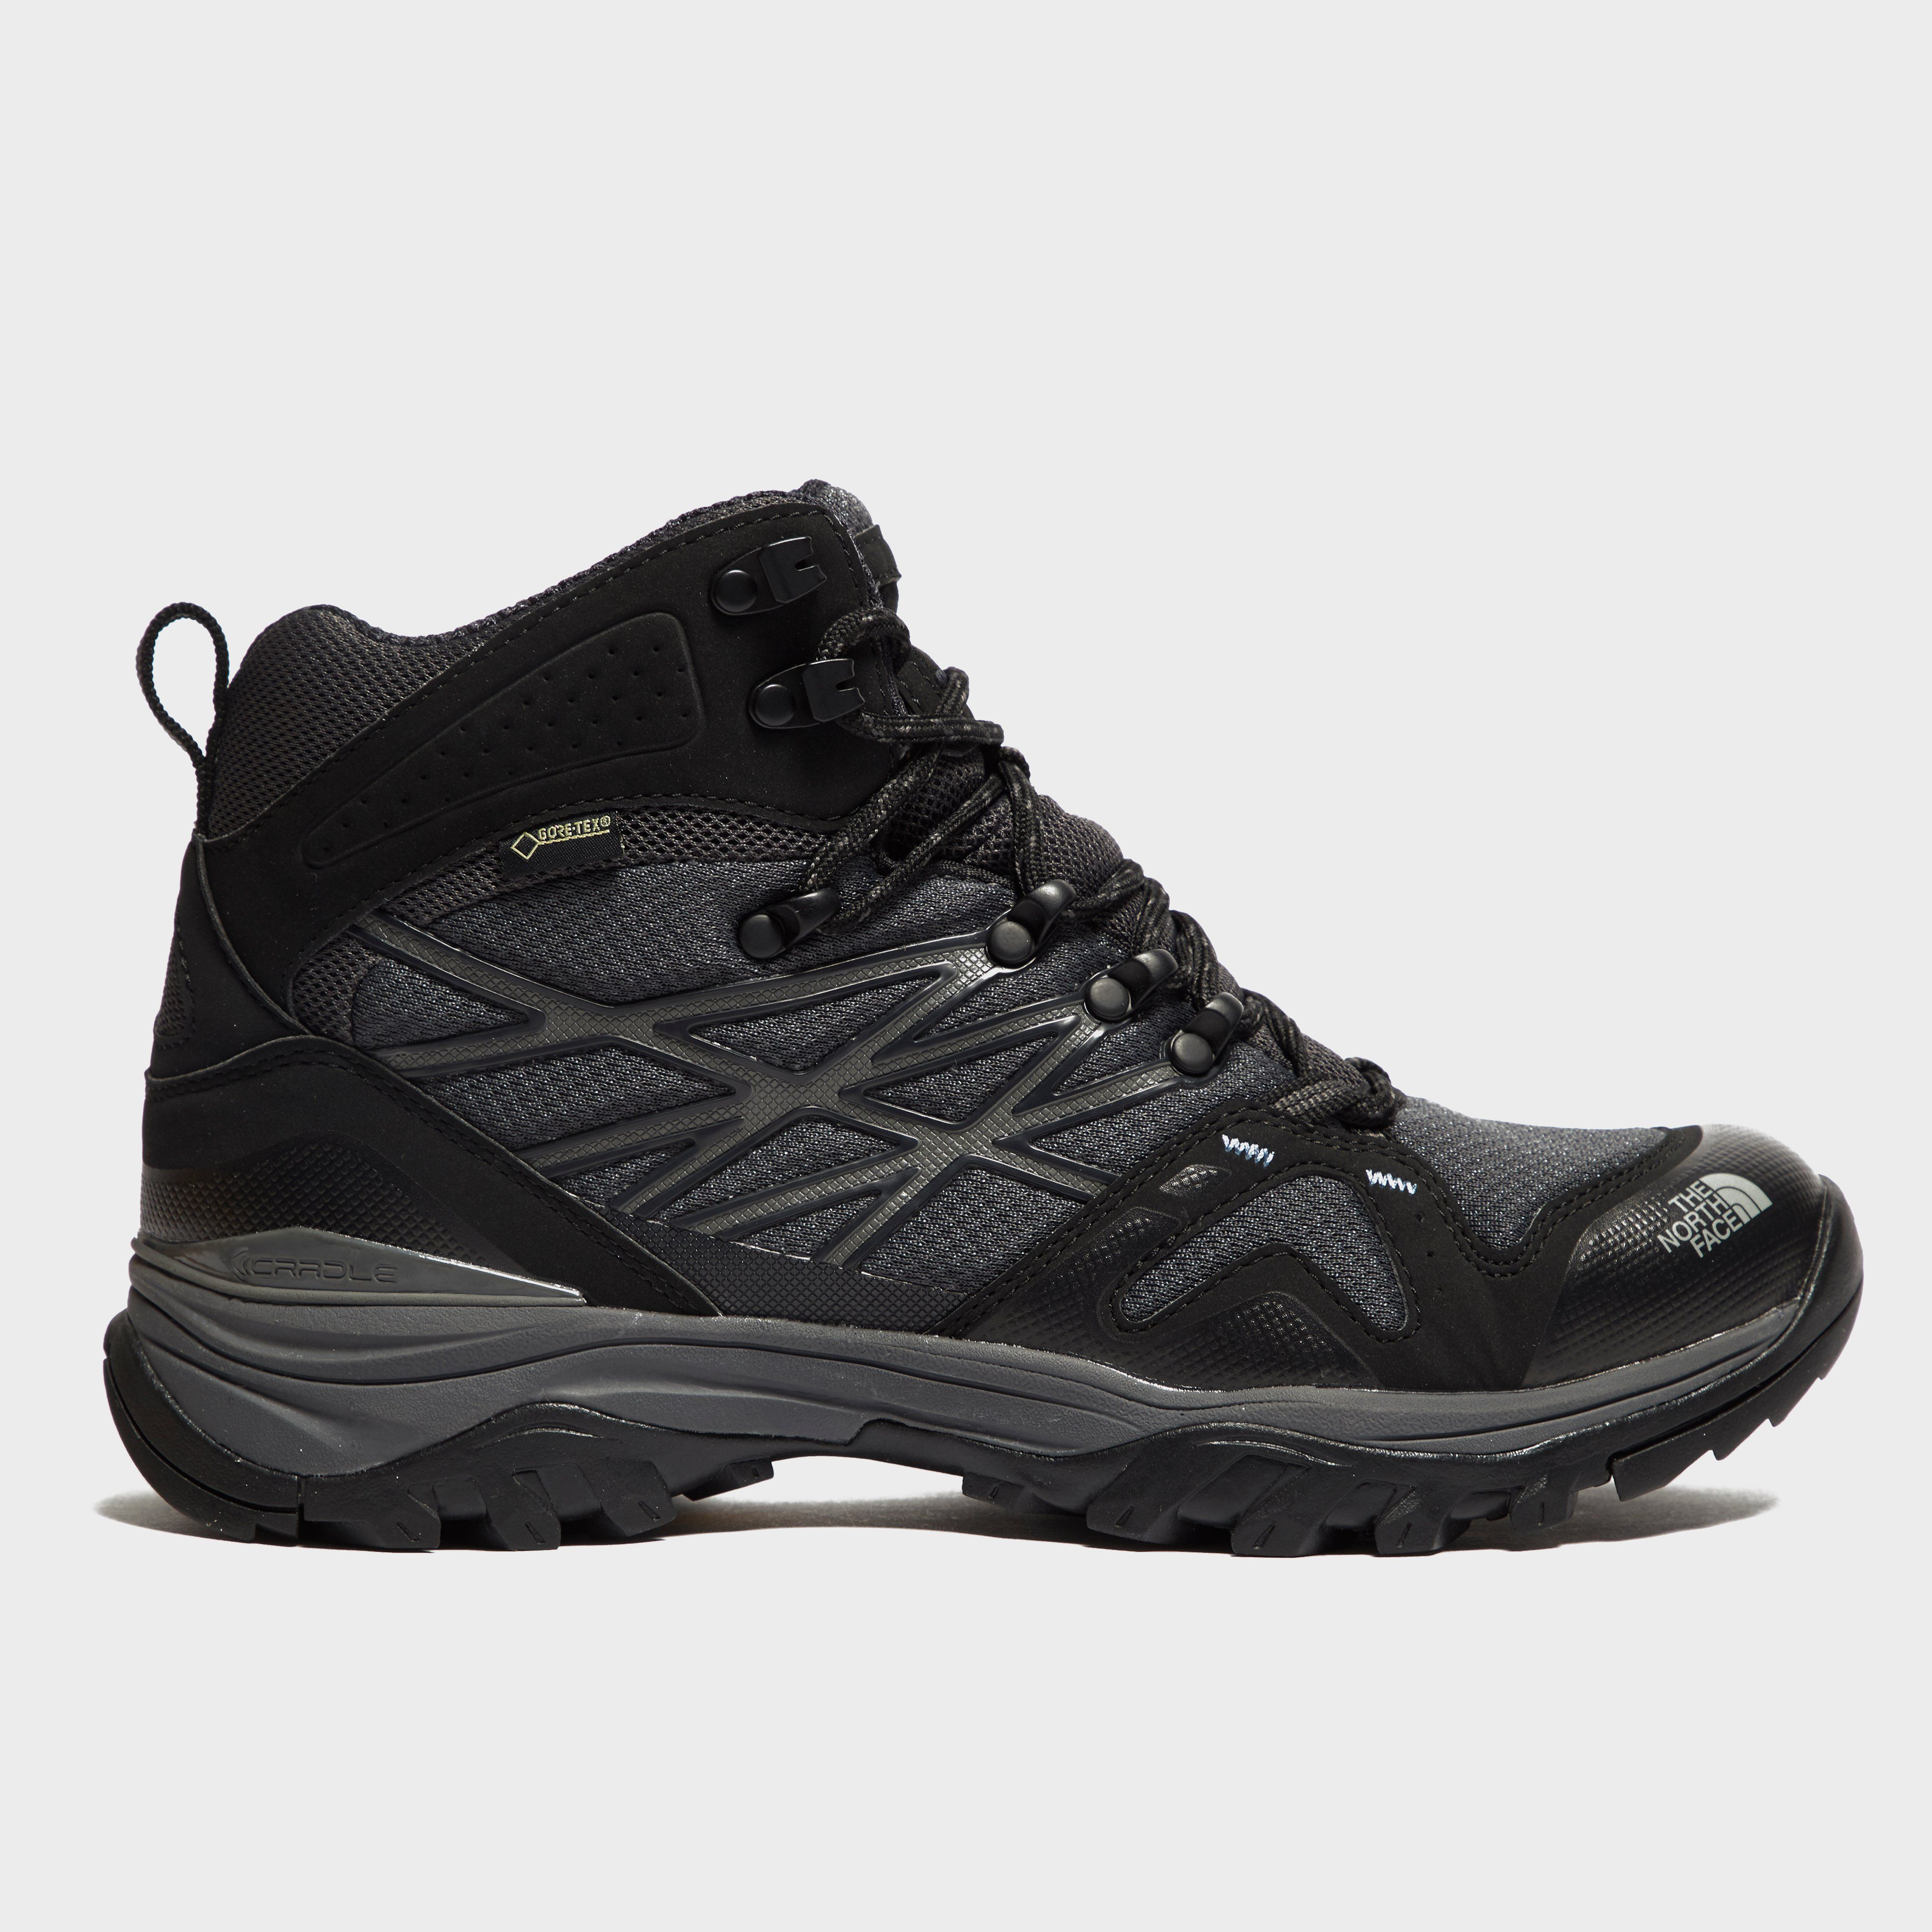 THE NORTH FACE Men's Hedgehog GORE-TEX® Boots